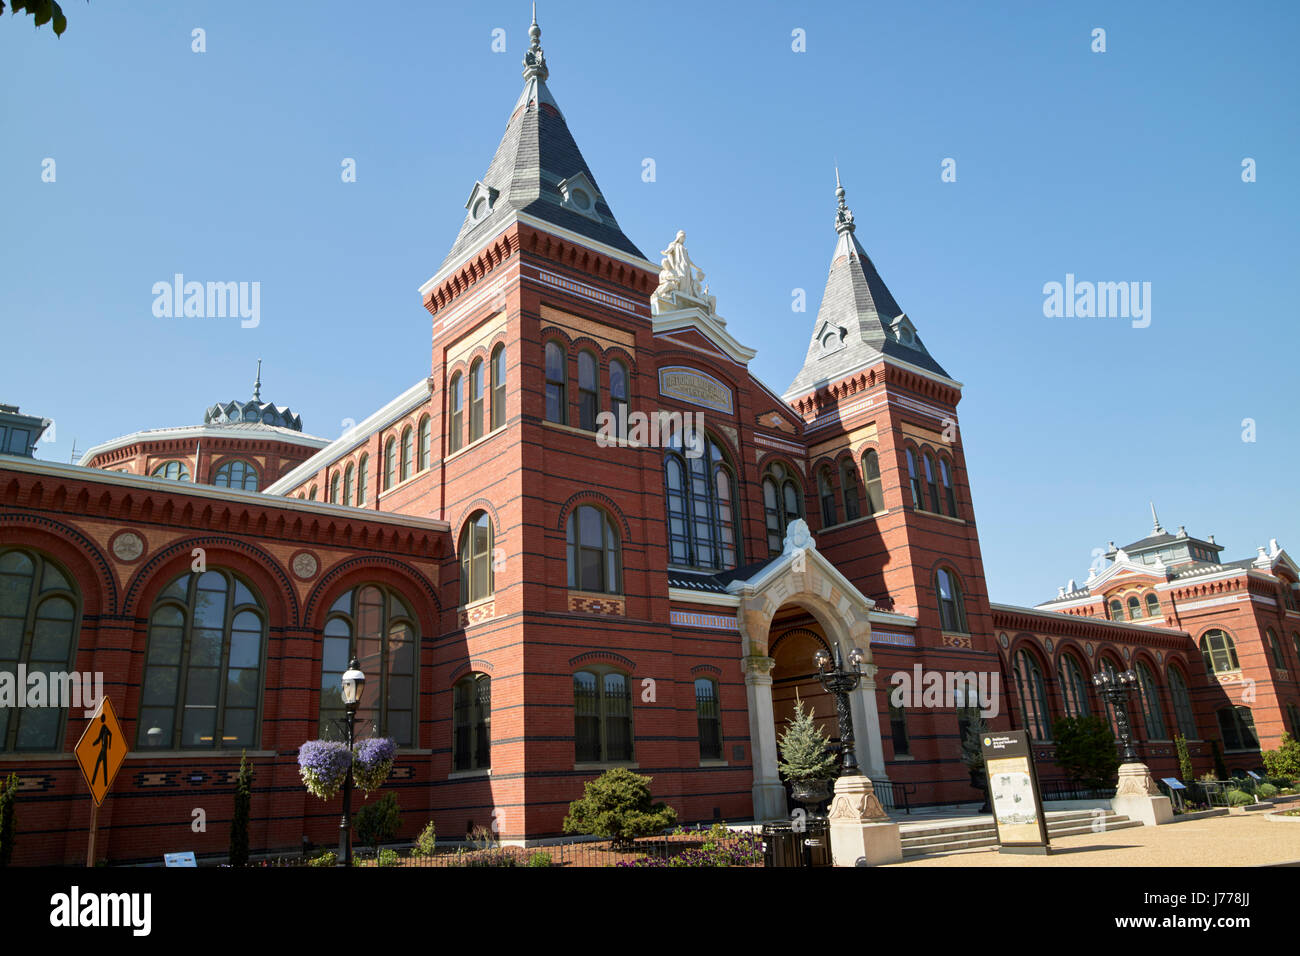 smithsonian arts and industries building Washington DC USA - Stock Image